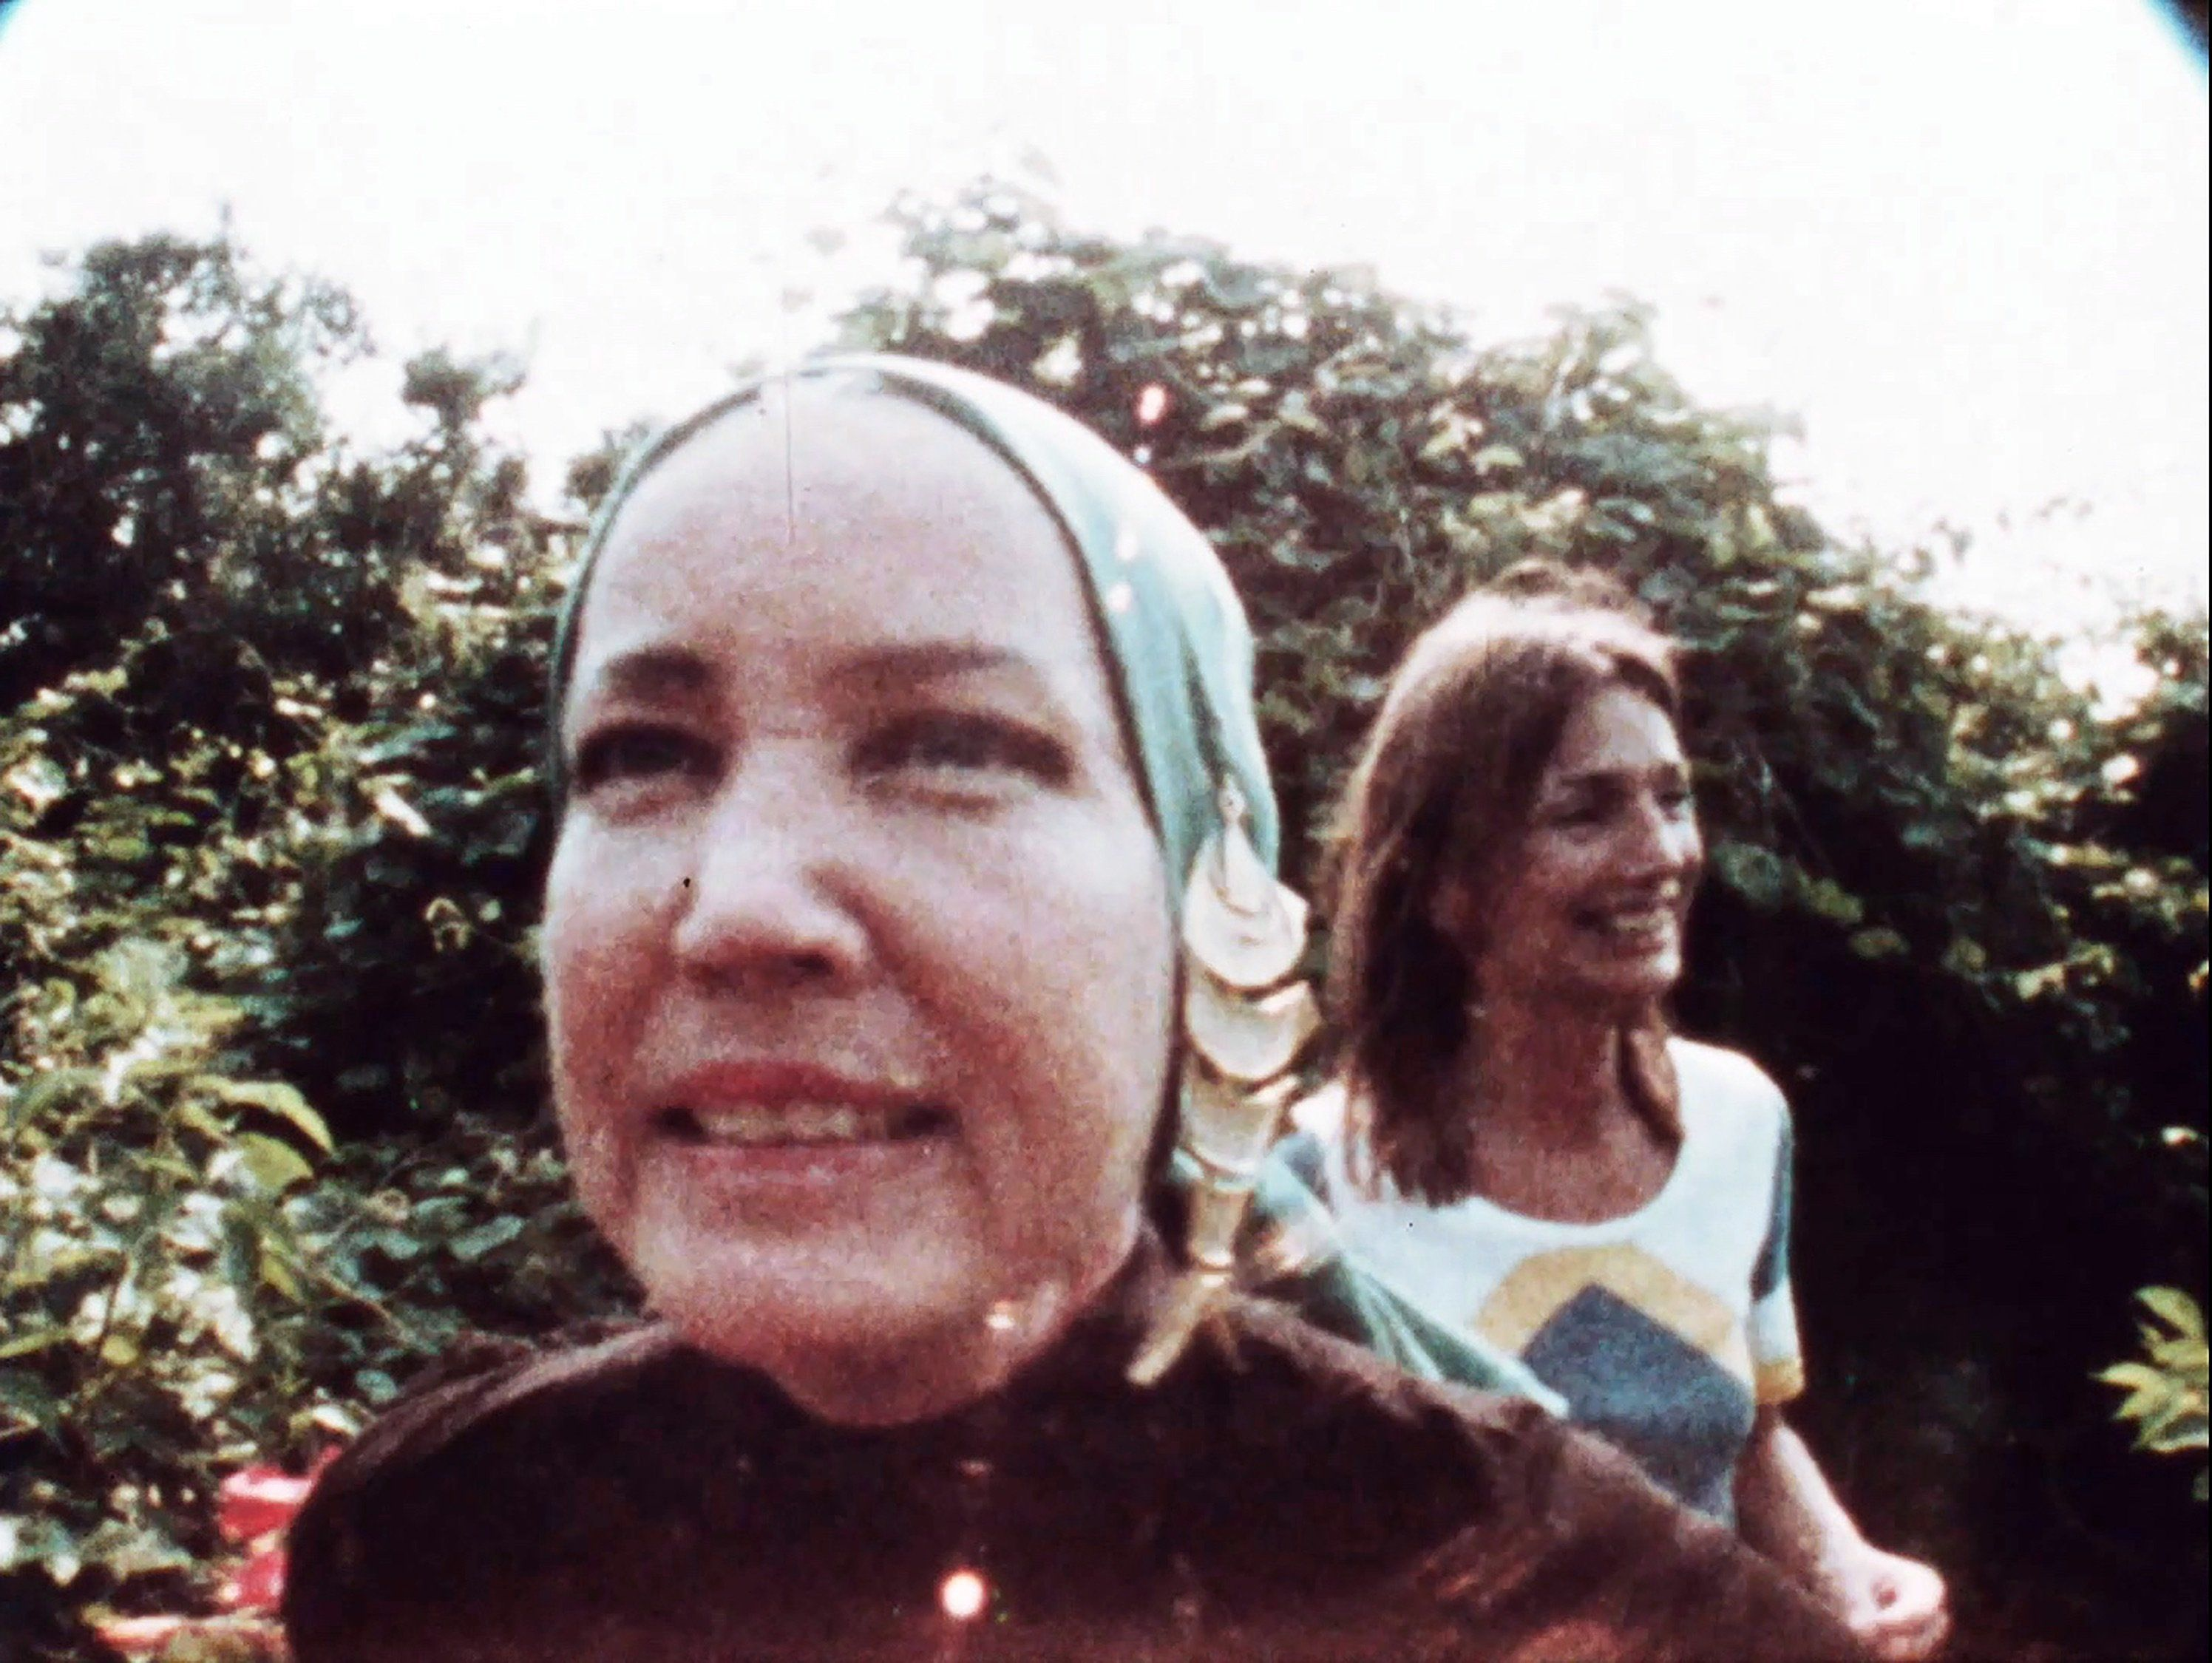 """Edith """"Little Edie"""" Bouvier Beale and Lee Radziwill at Grey Gardens in New York in 1972."""